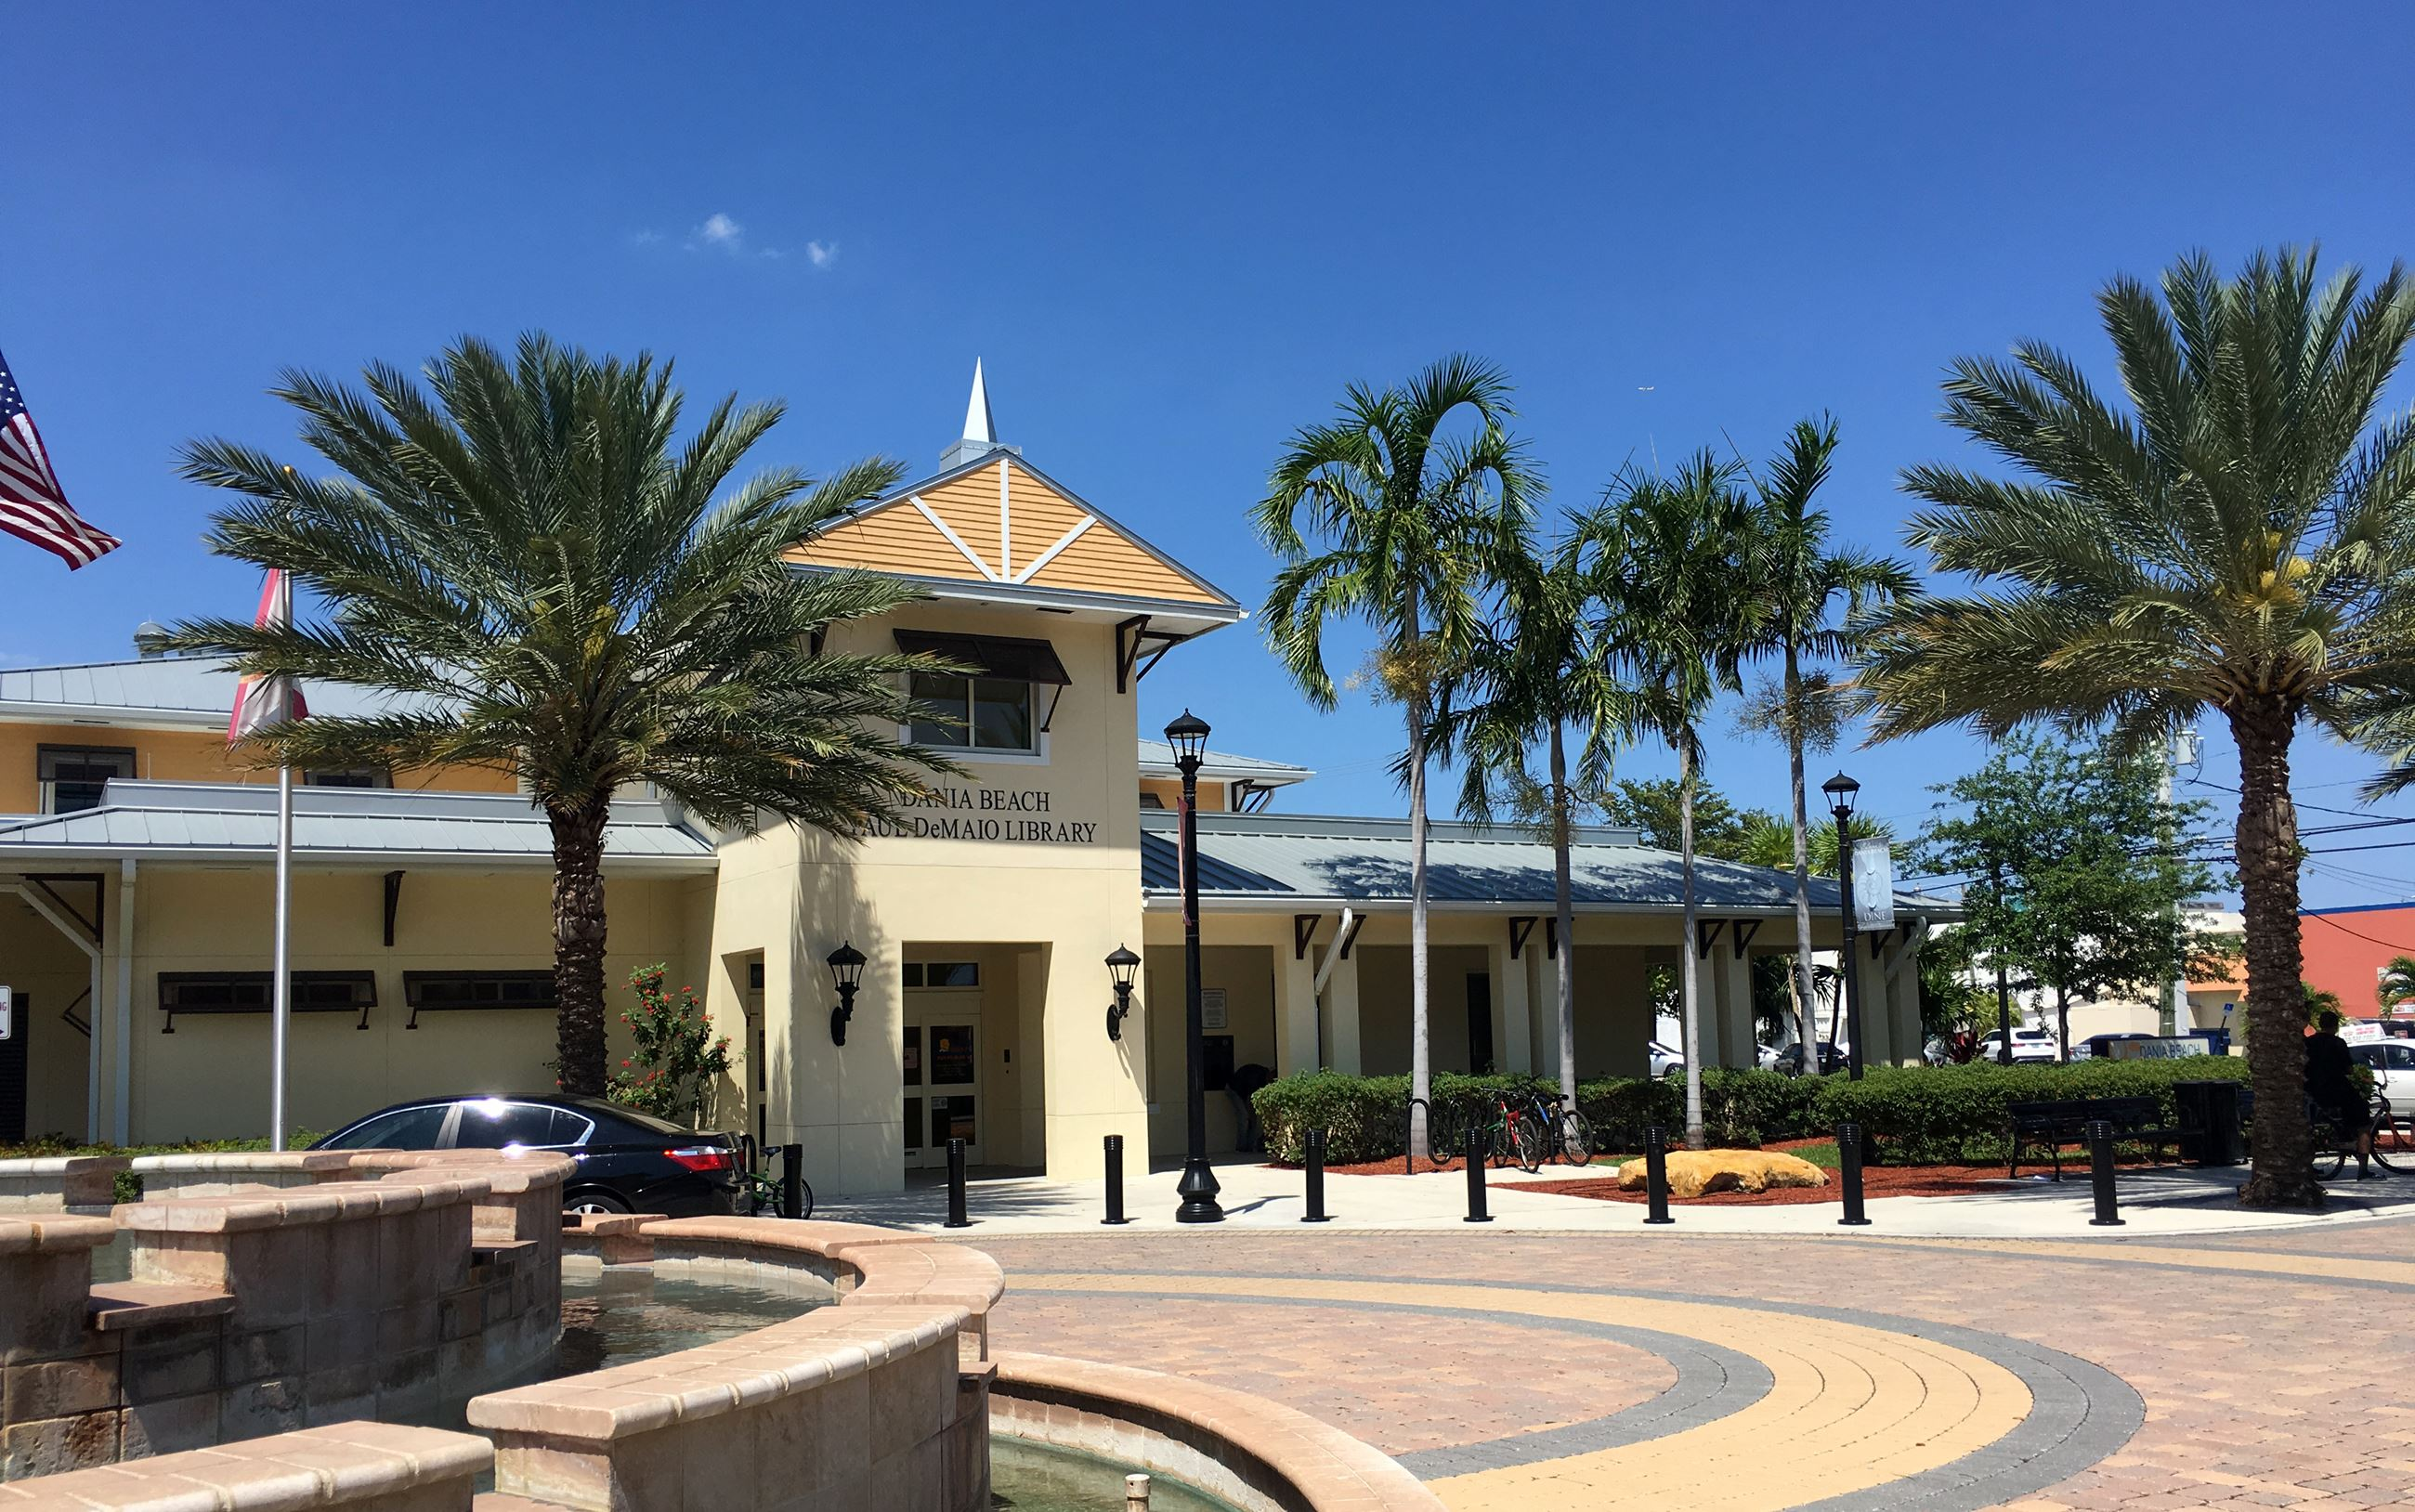 Dania Beach Library Leed Gold Certified